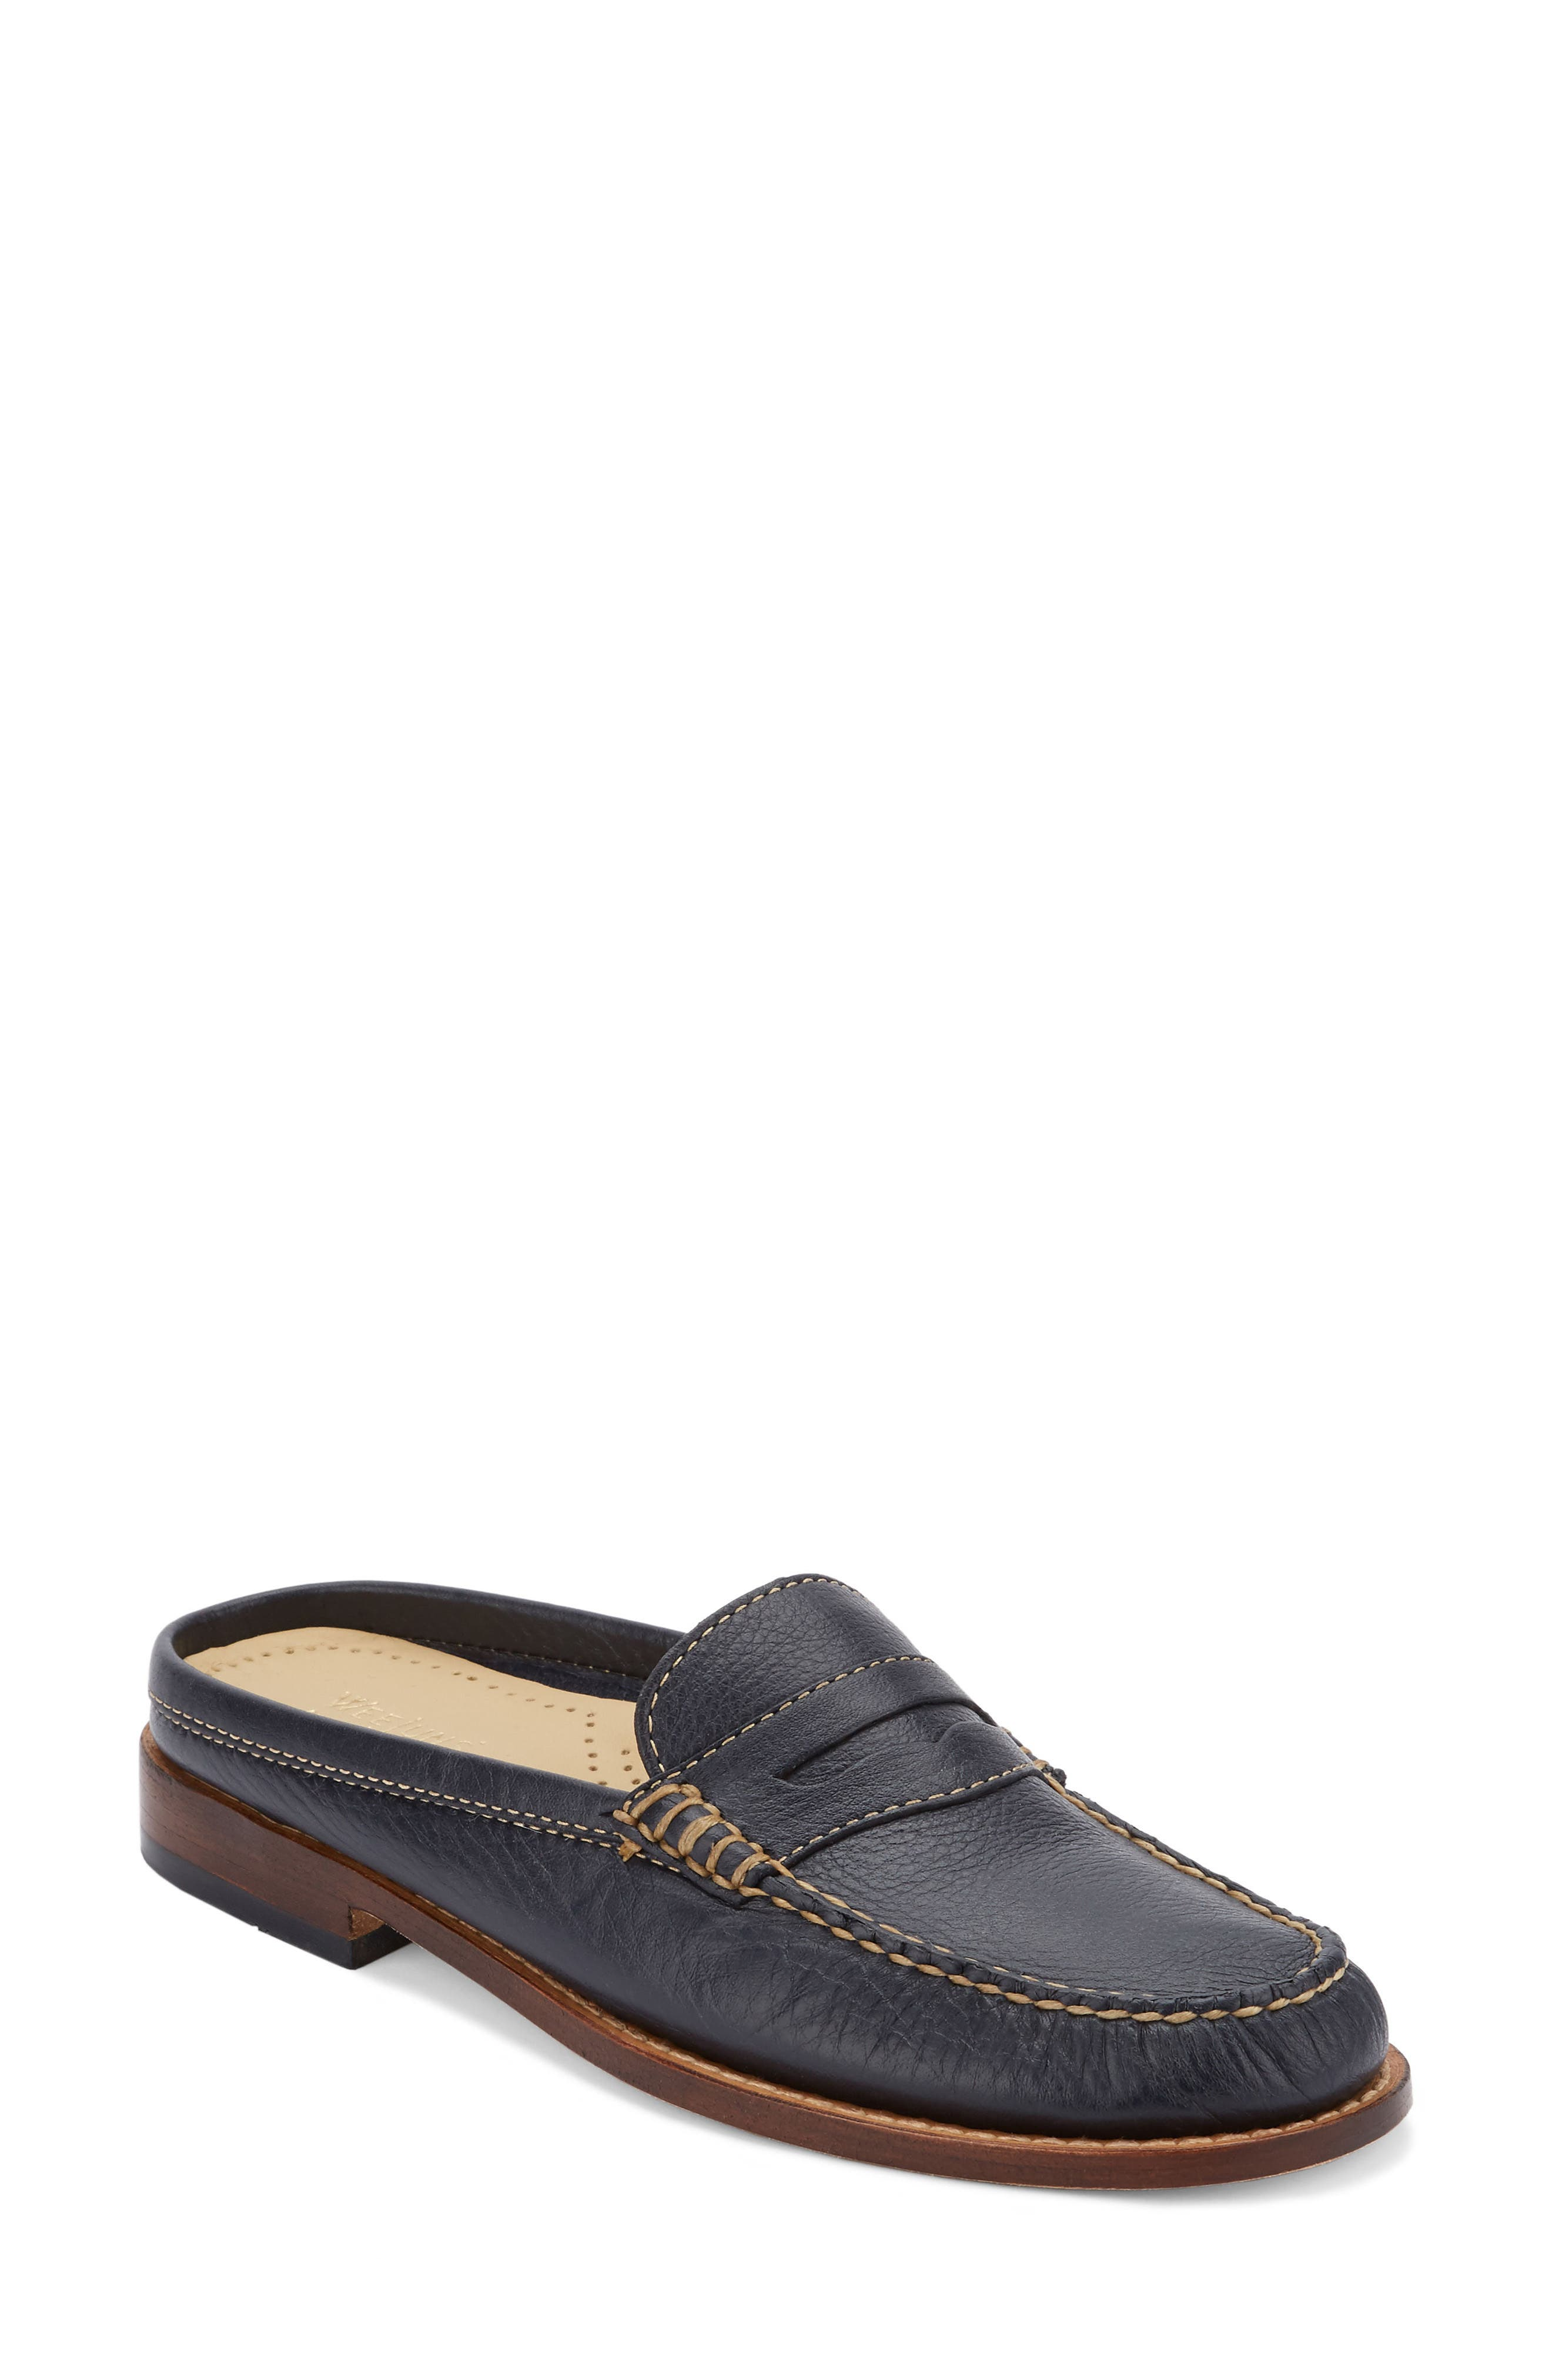 Wynn Loafer Mule,                             Main thumbnail 1, color,                             Navy Leather